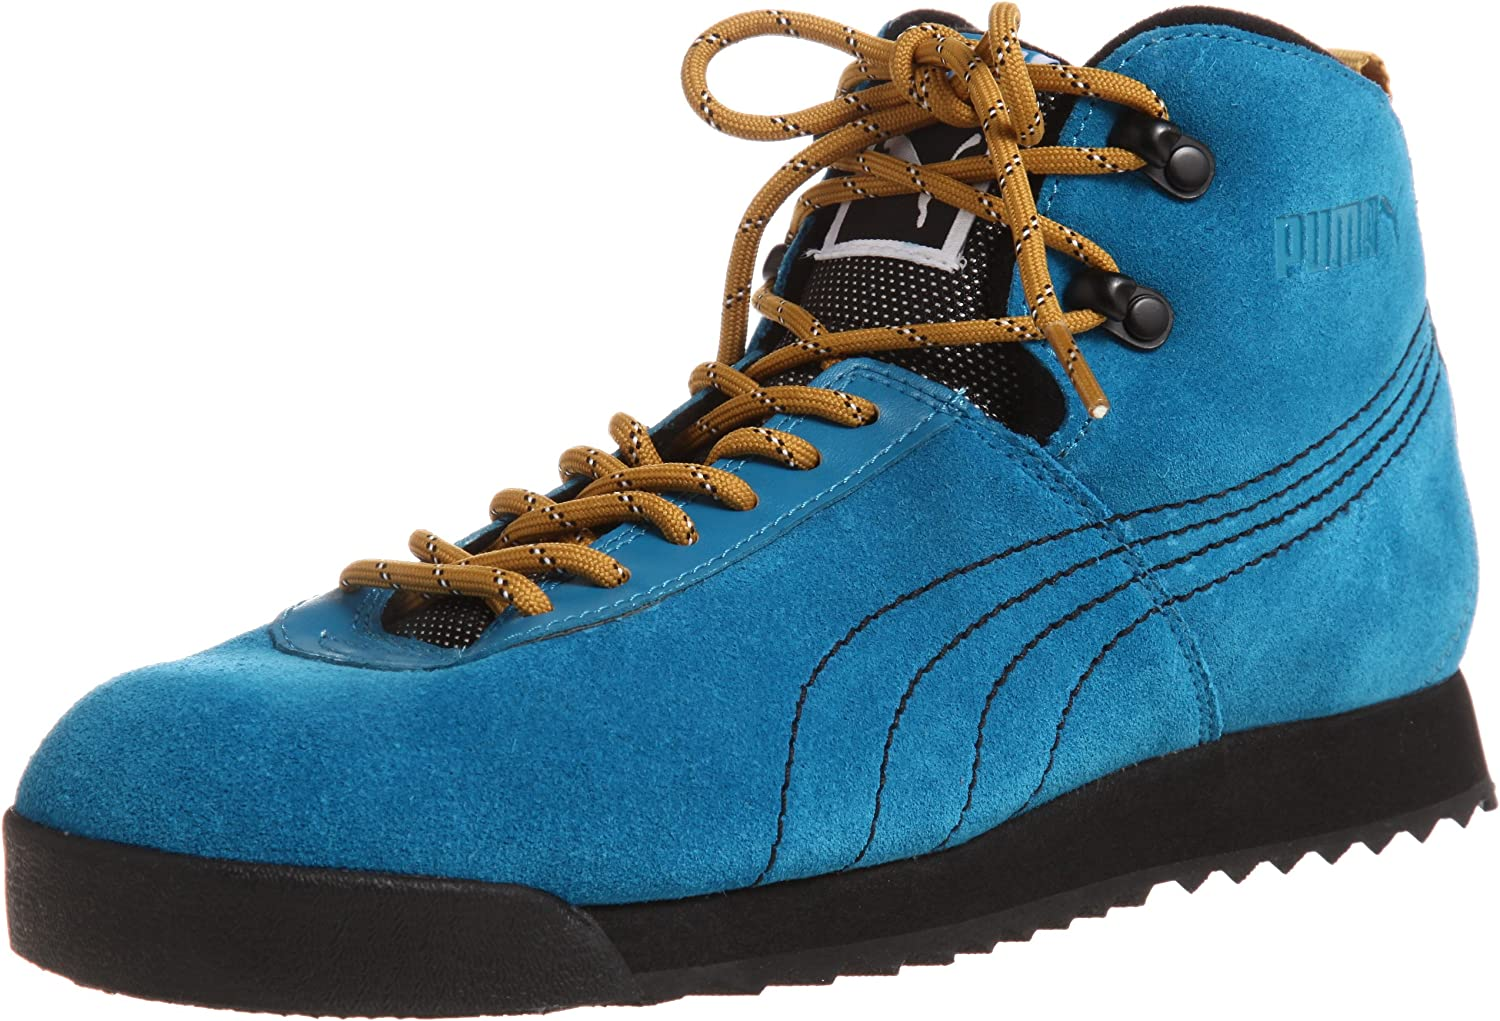 Today's only PUMA Roma Hiker Mens Trainers Boots Hiking Suede 5 ☆ very popular